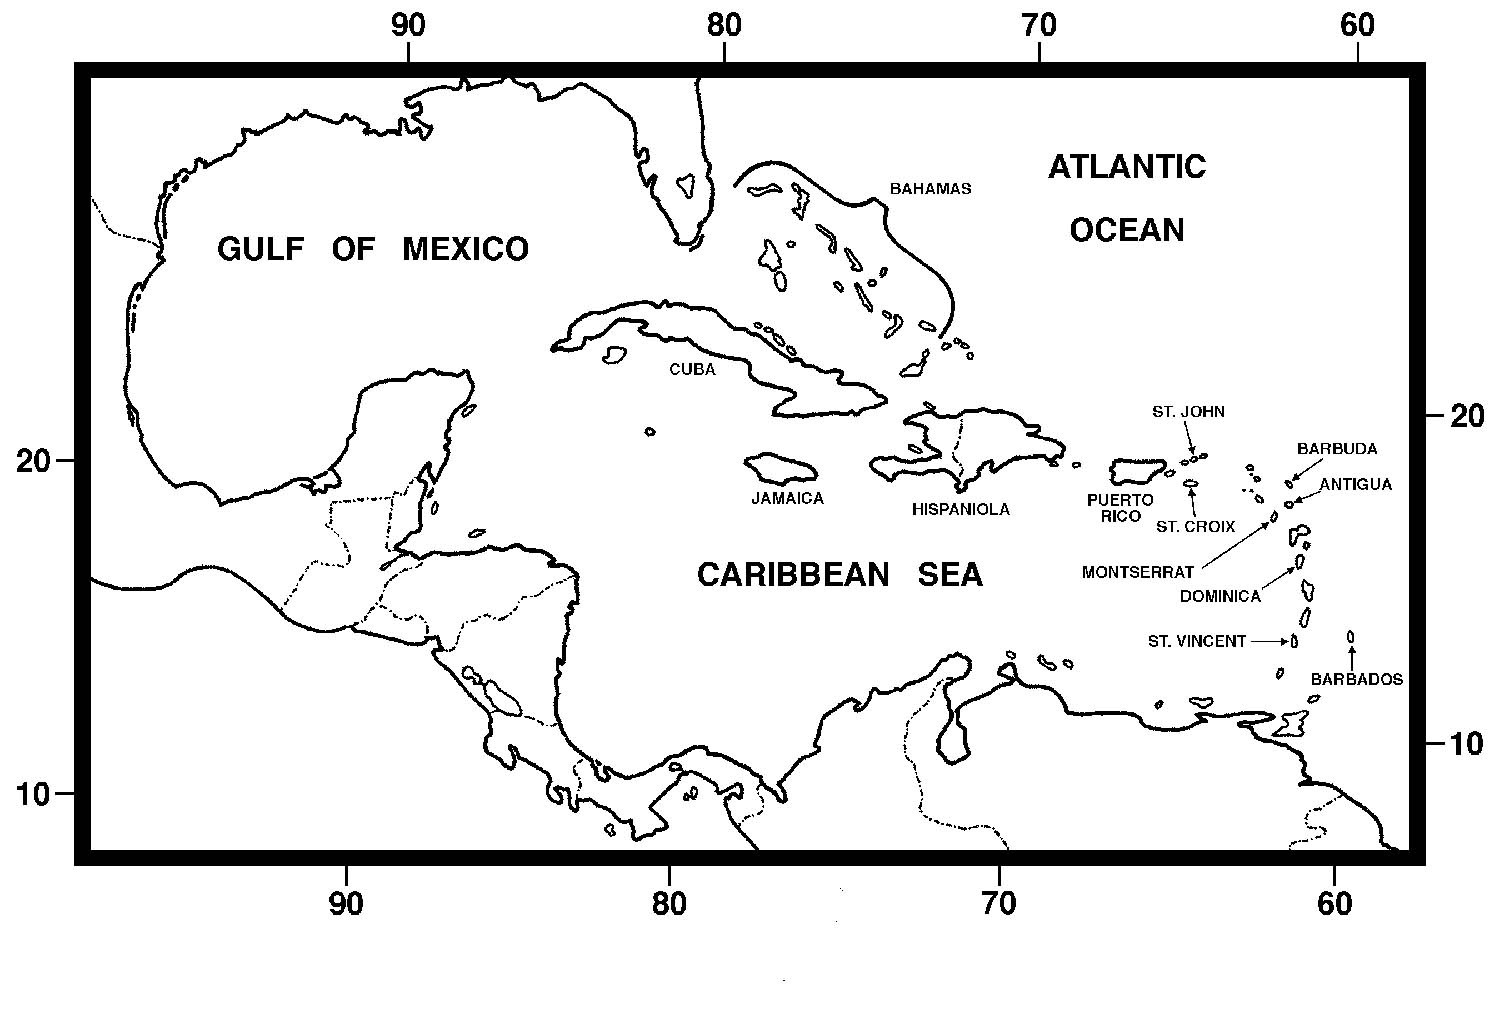 Stupendous image with printable map of the caribbean